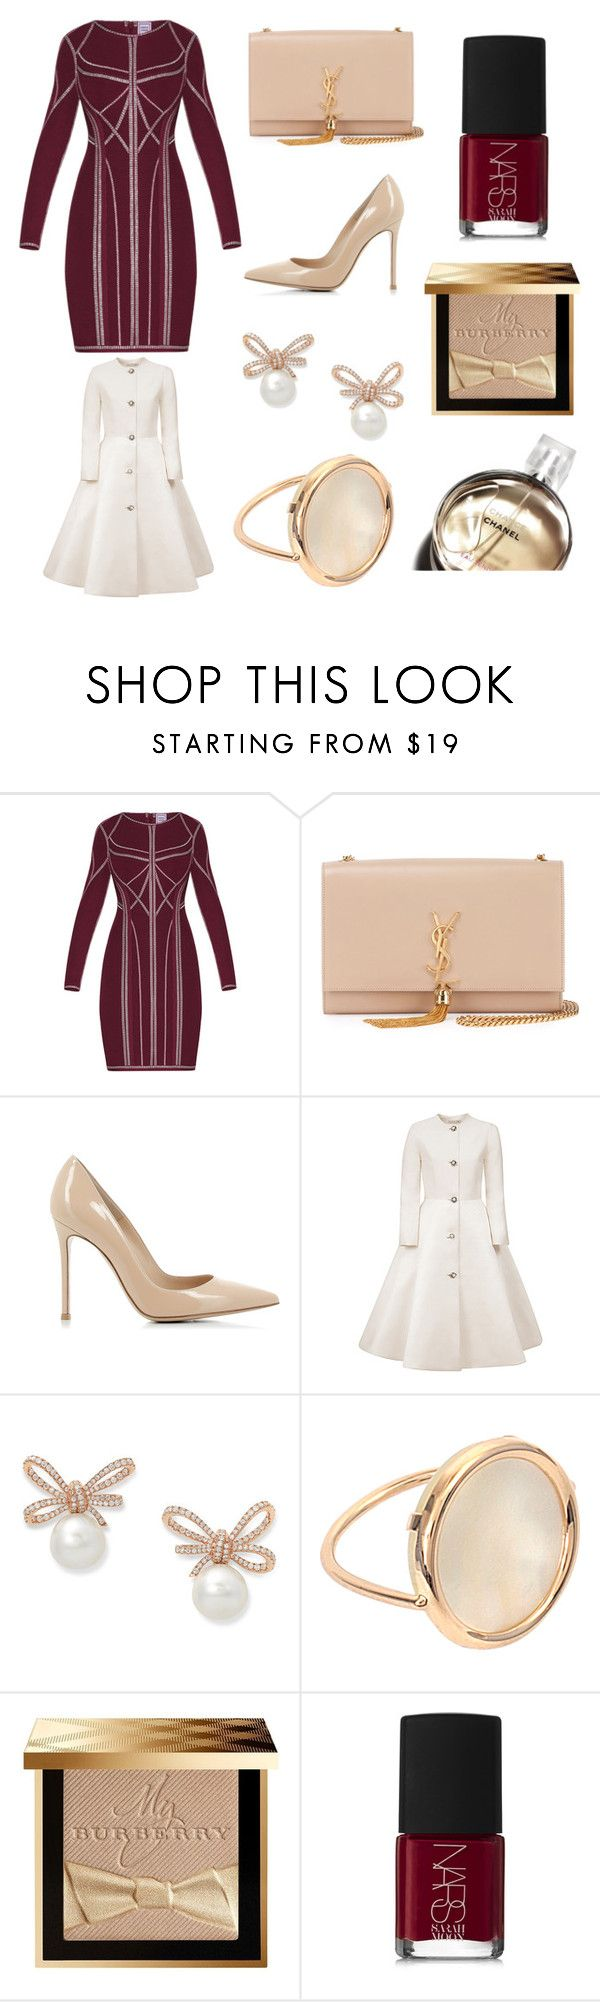 """Burgundy classy"" by giovanna-222 on Polyvore featuring Hervé Léger, Yves Saint Laurent, Gianvito Rossi, Esme Vie, Ginette NY, Chanel, Burberry and NARS Cosmetics"